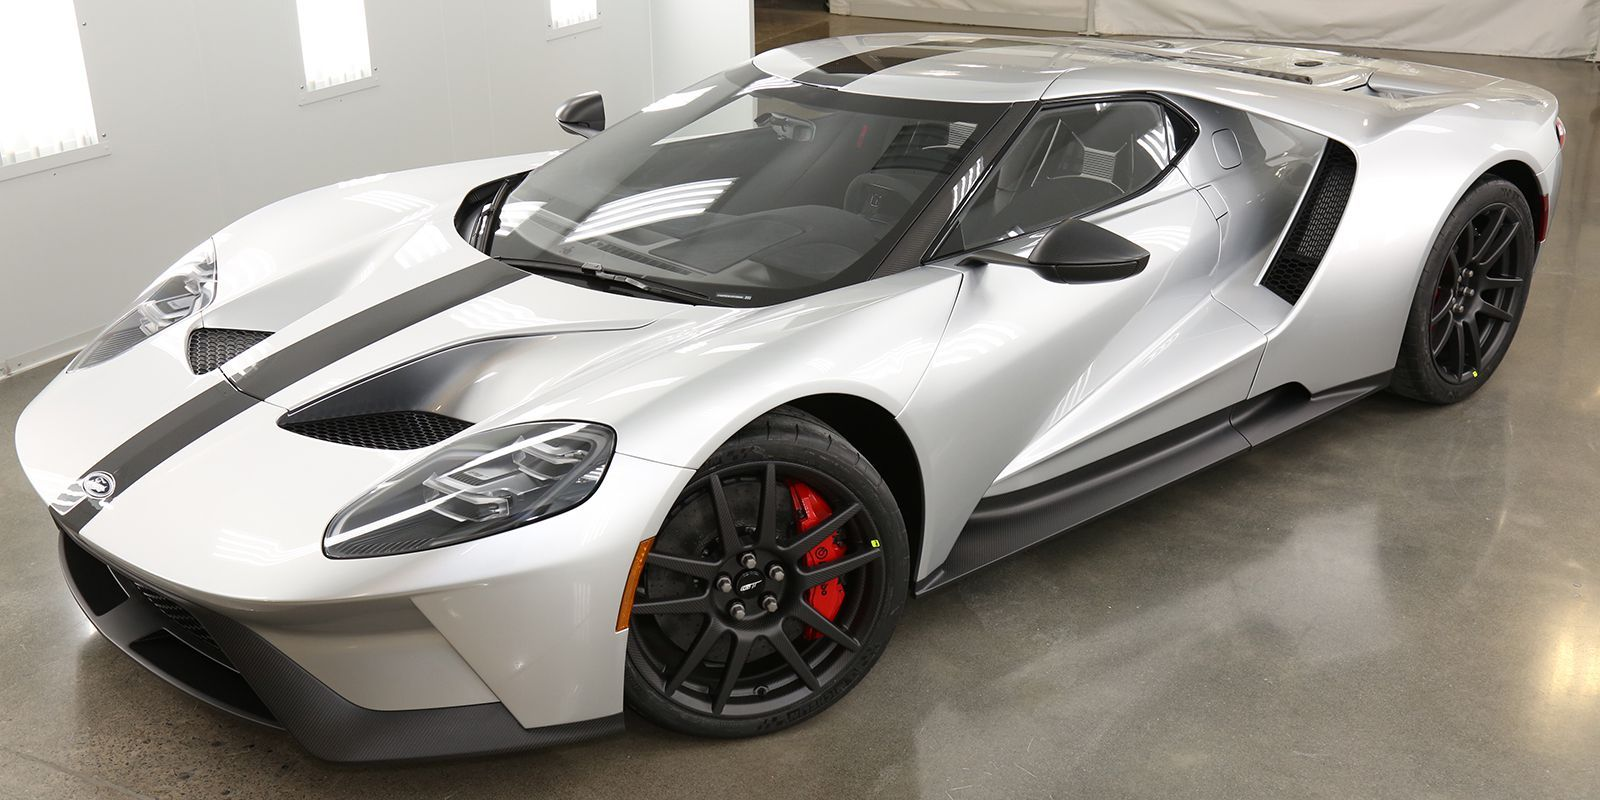 The Lightweight Ford Gt Competition Series Still Weighs More Than 3000 Pounds Ford Gt Car Ford Super Cars